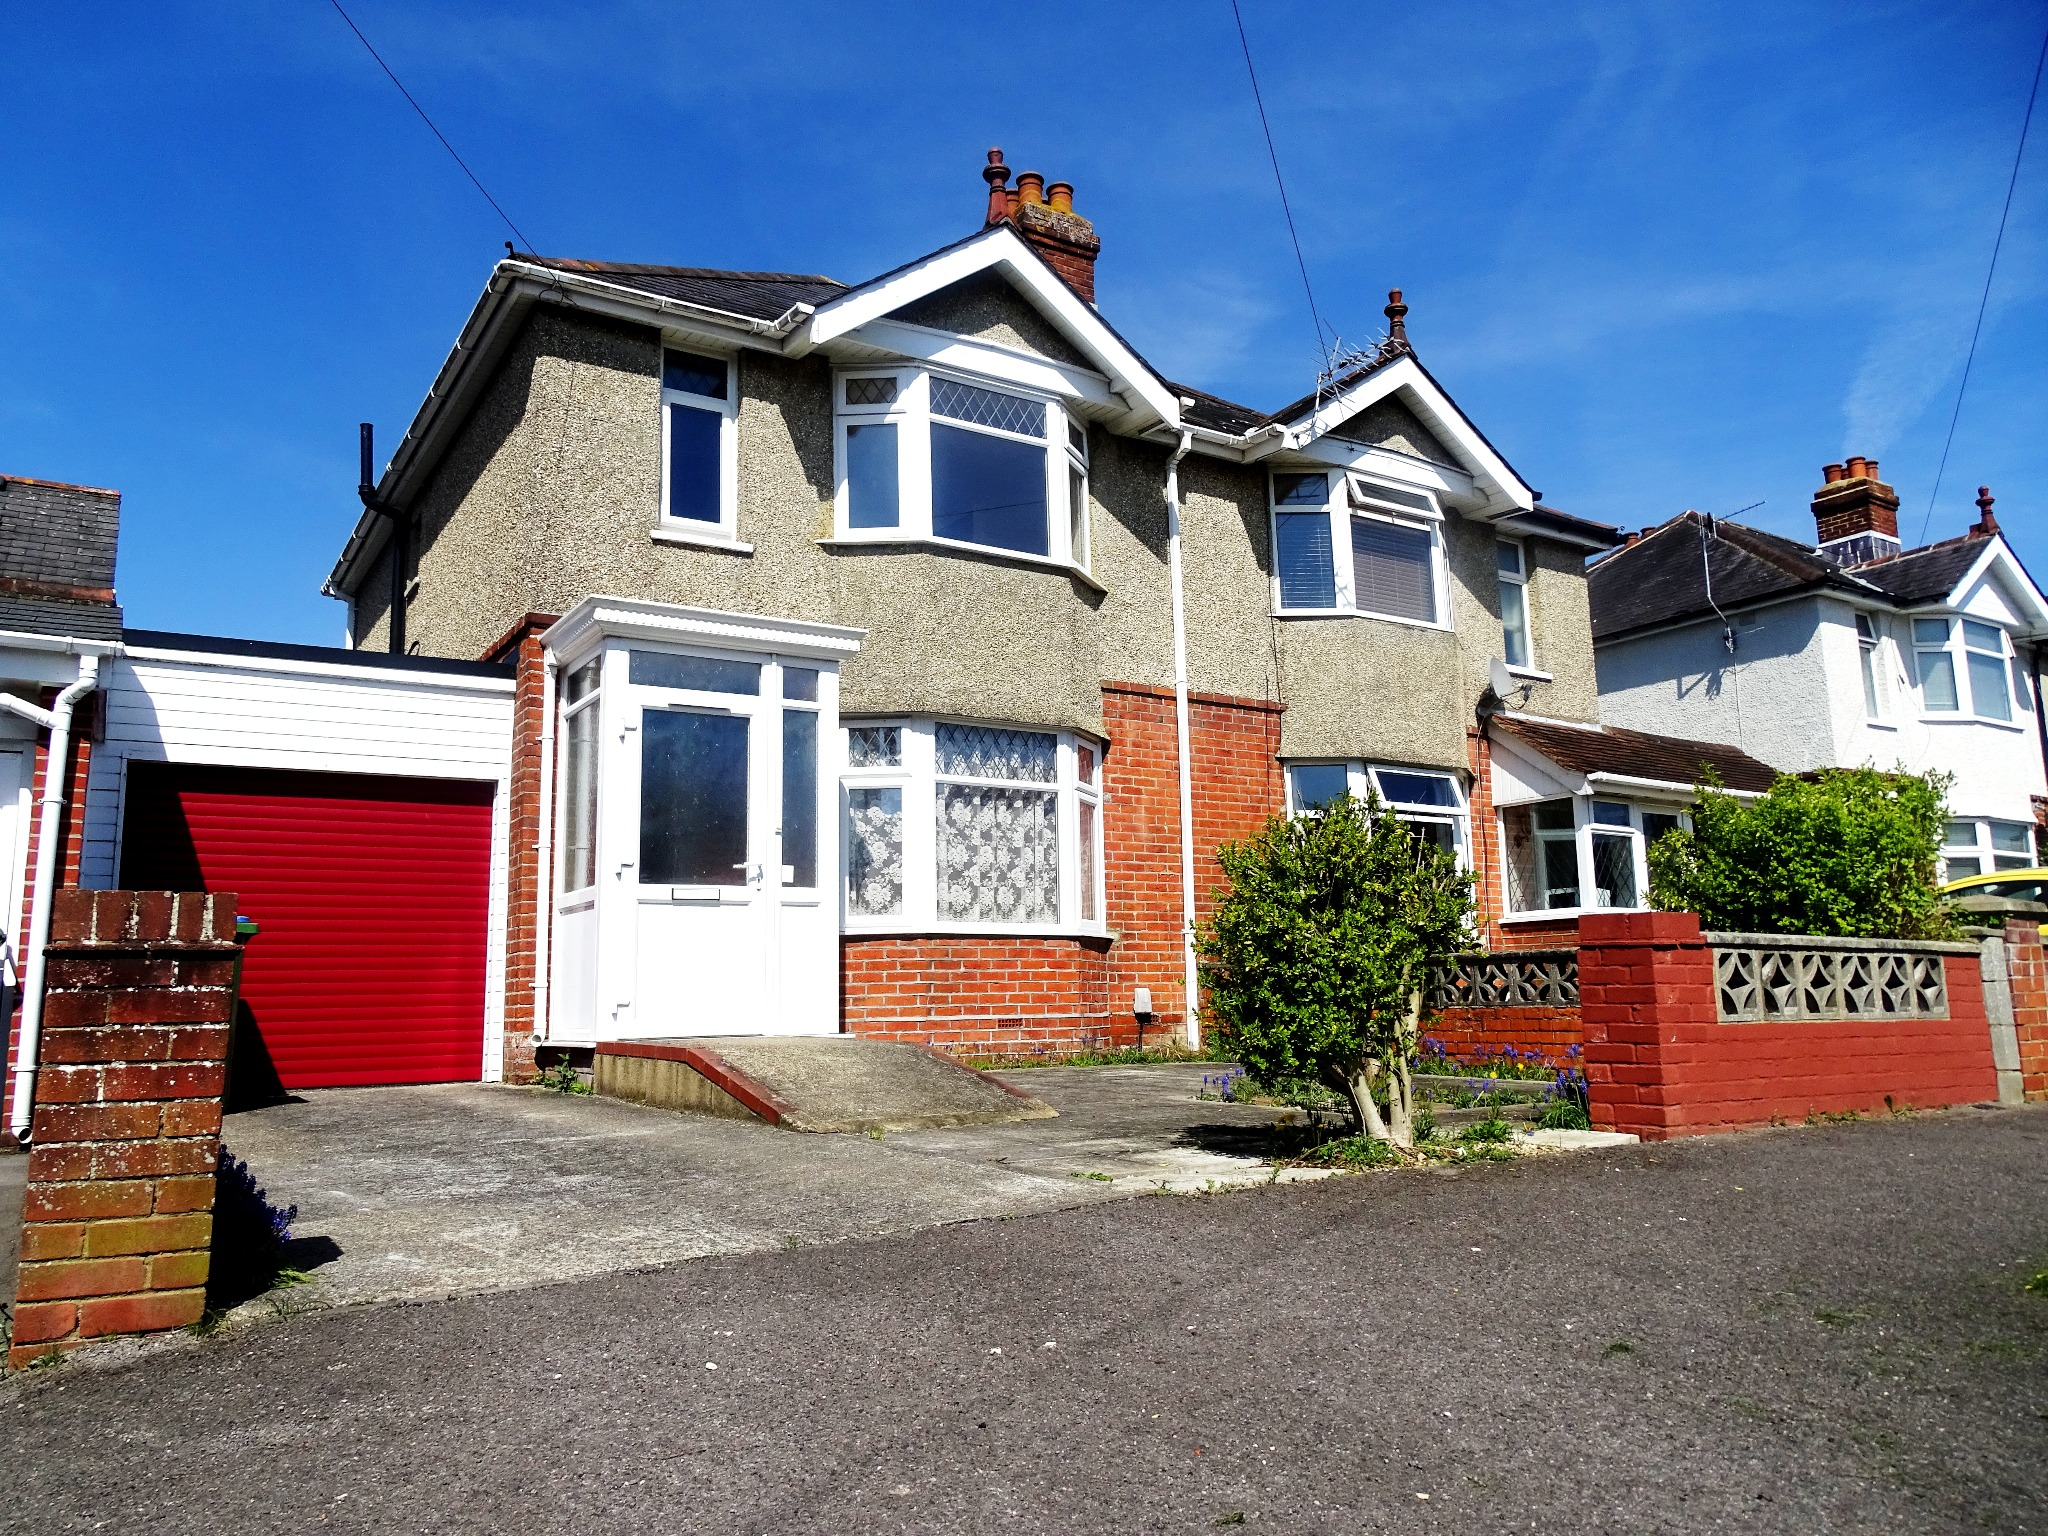 Rosewall Road, Maybush, Southampton